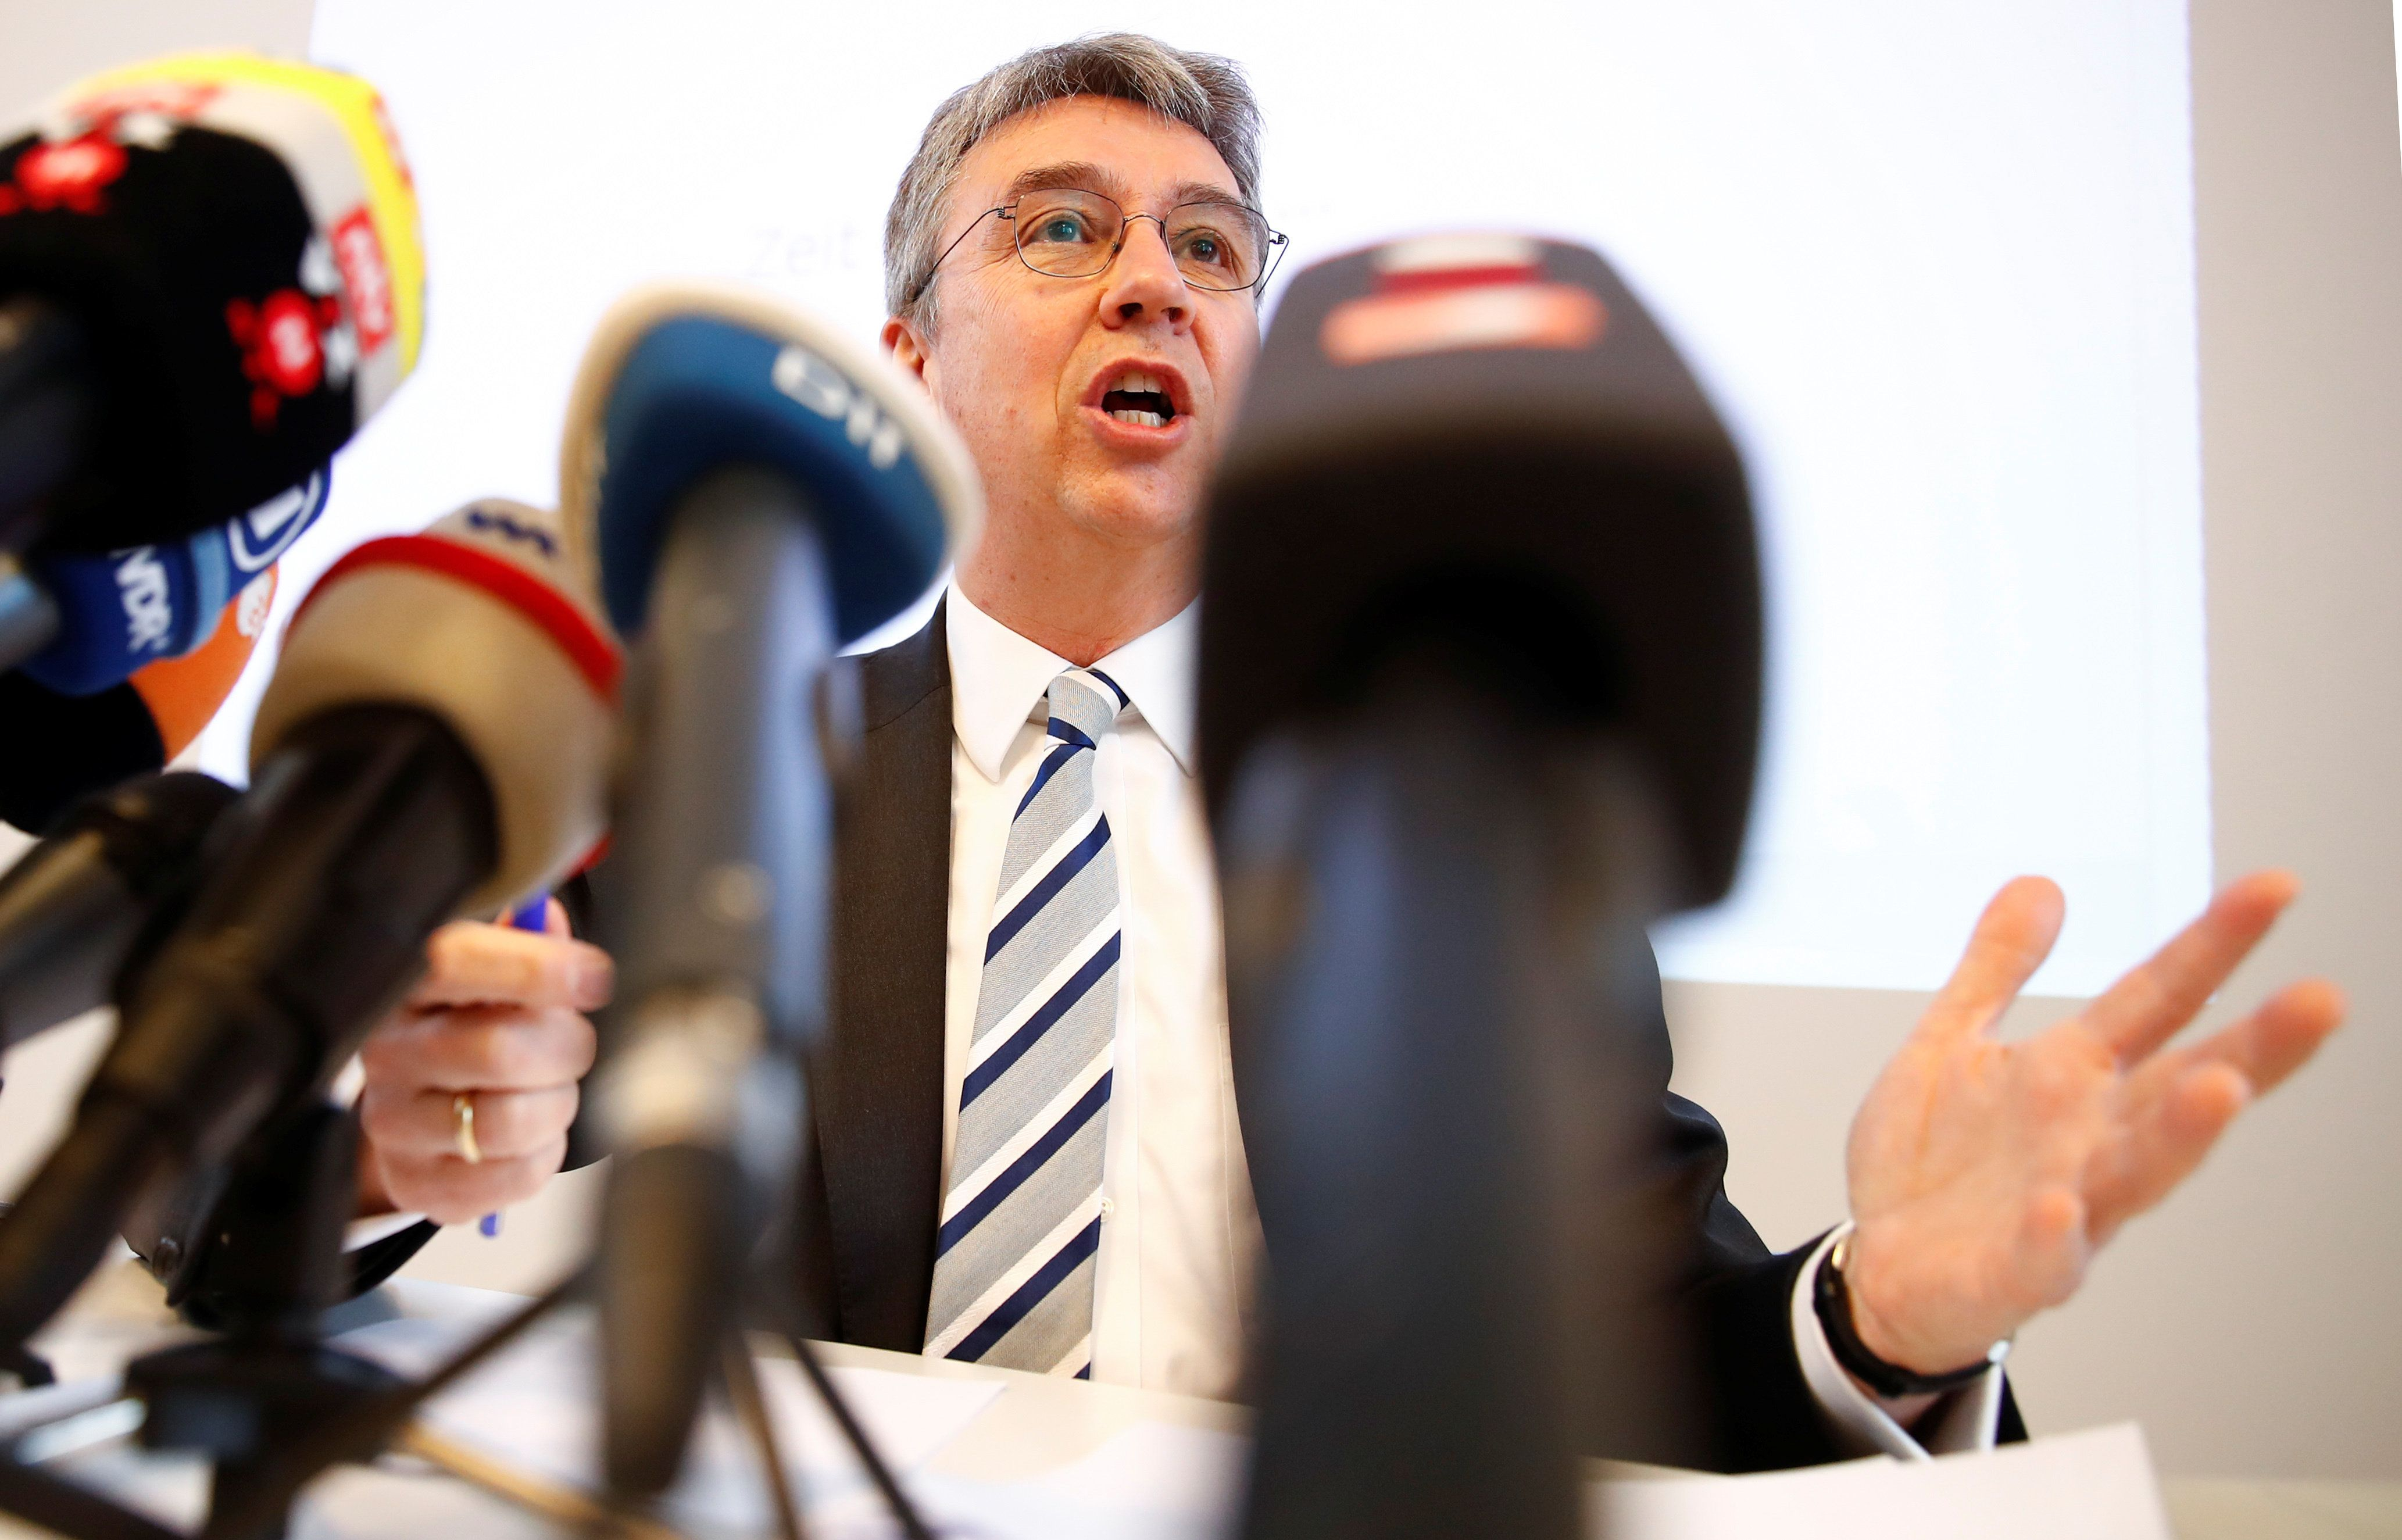 Andreas Mundt, president of Germany's Federal Cartel Office addresses a news conference presenting findings of the anti-trust